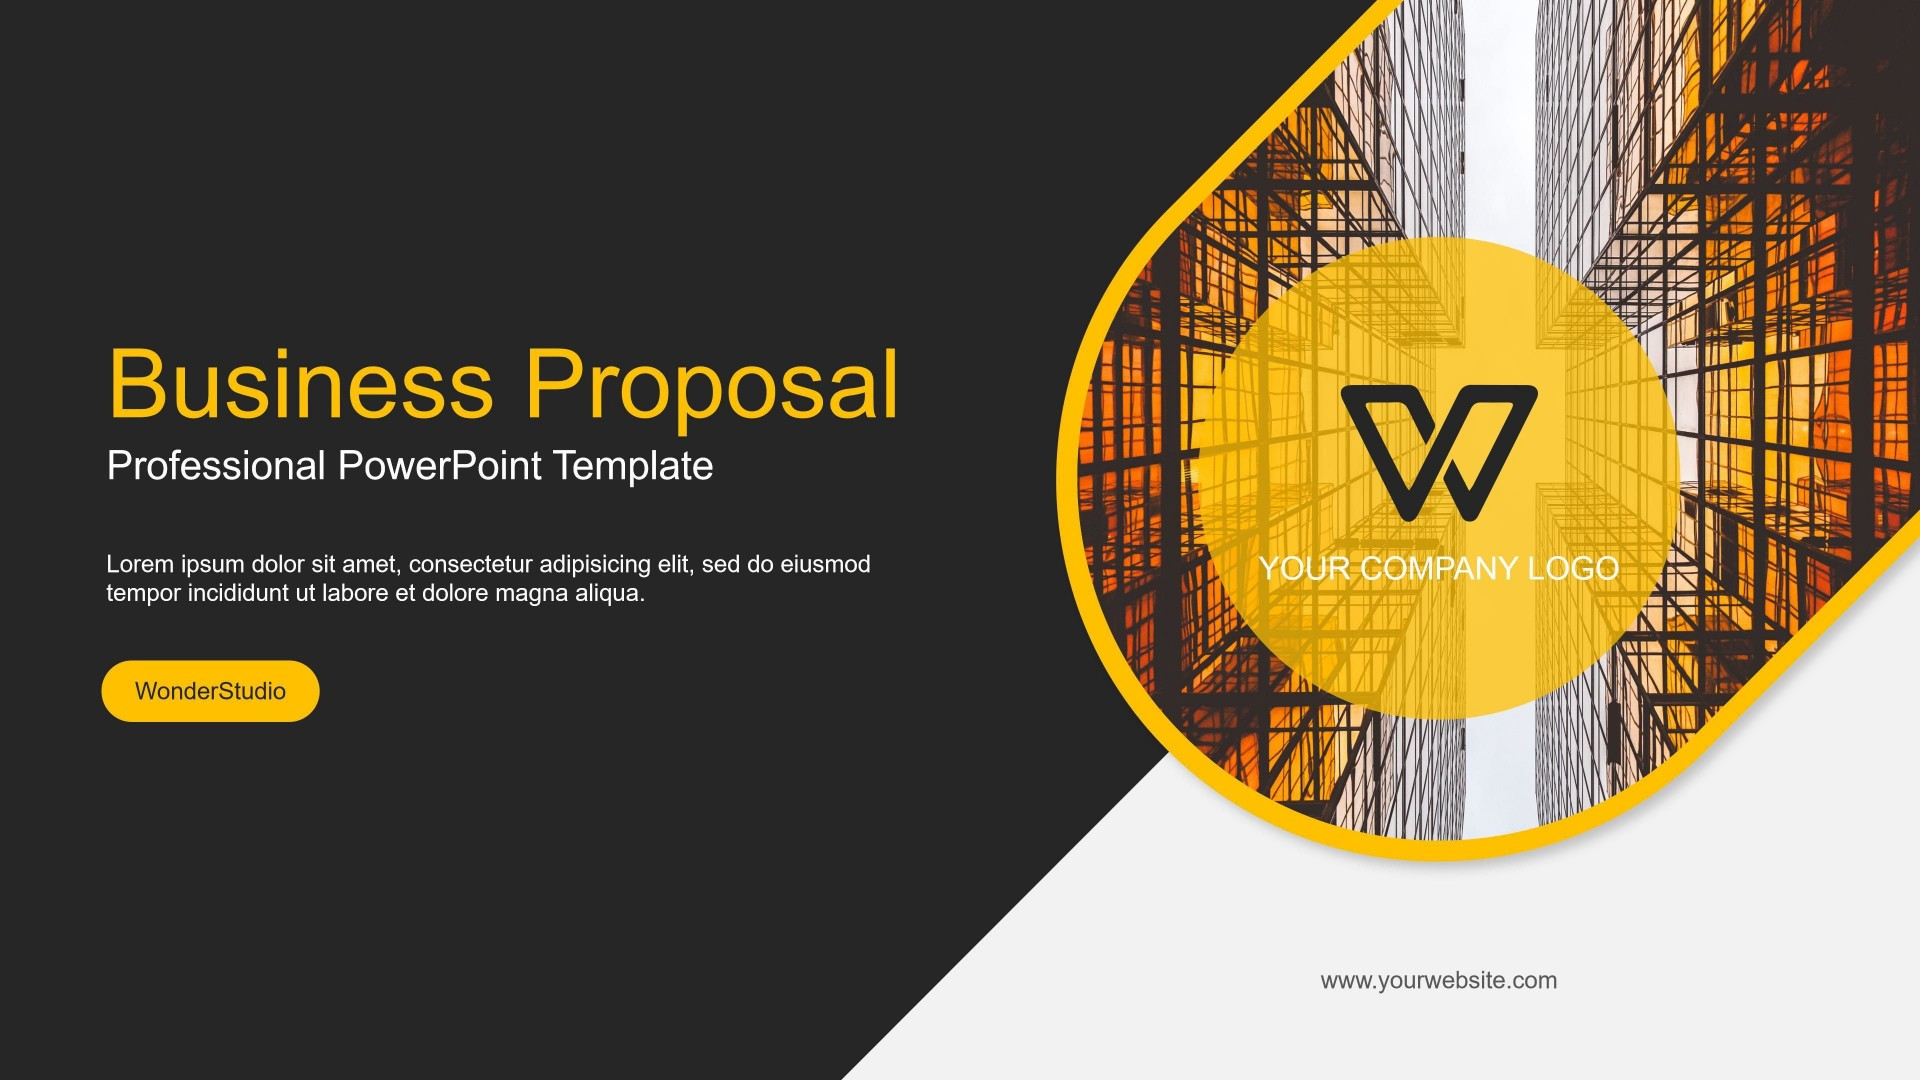 004 Top Professional Ppt Template Free Download Example  Microsoft 2017 Powerpoint Presentation 20191920